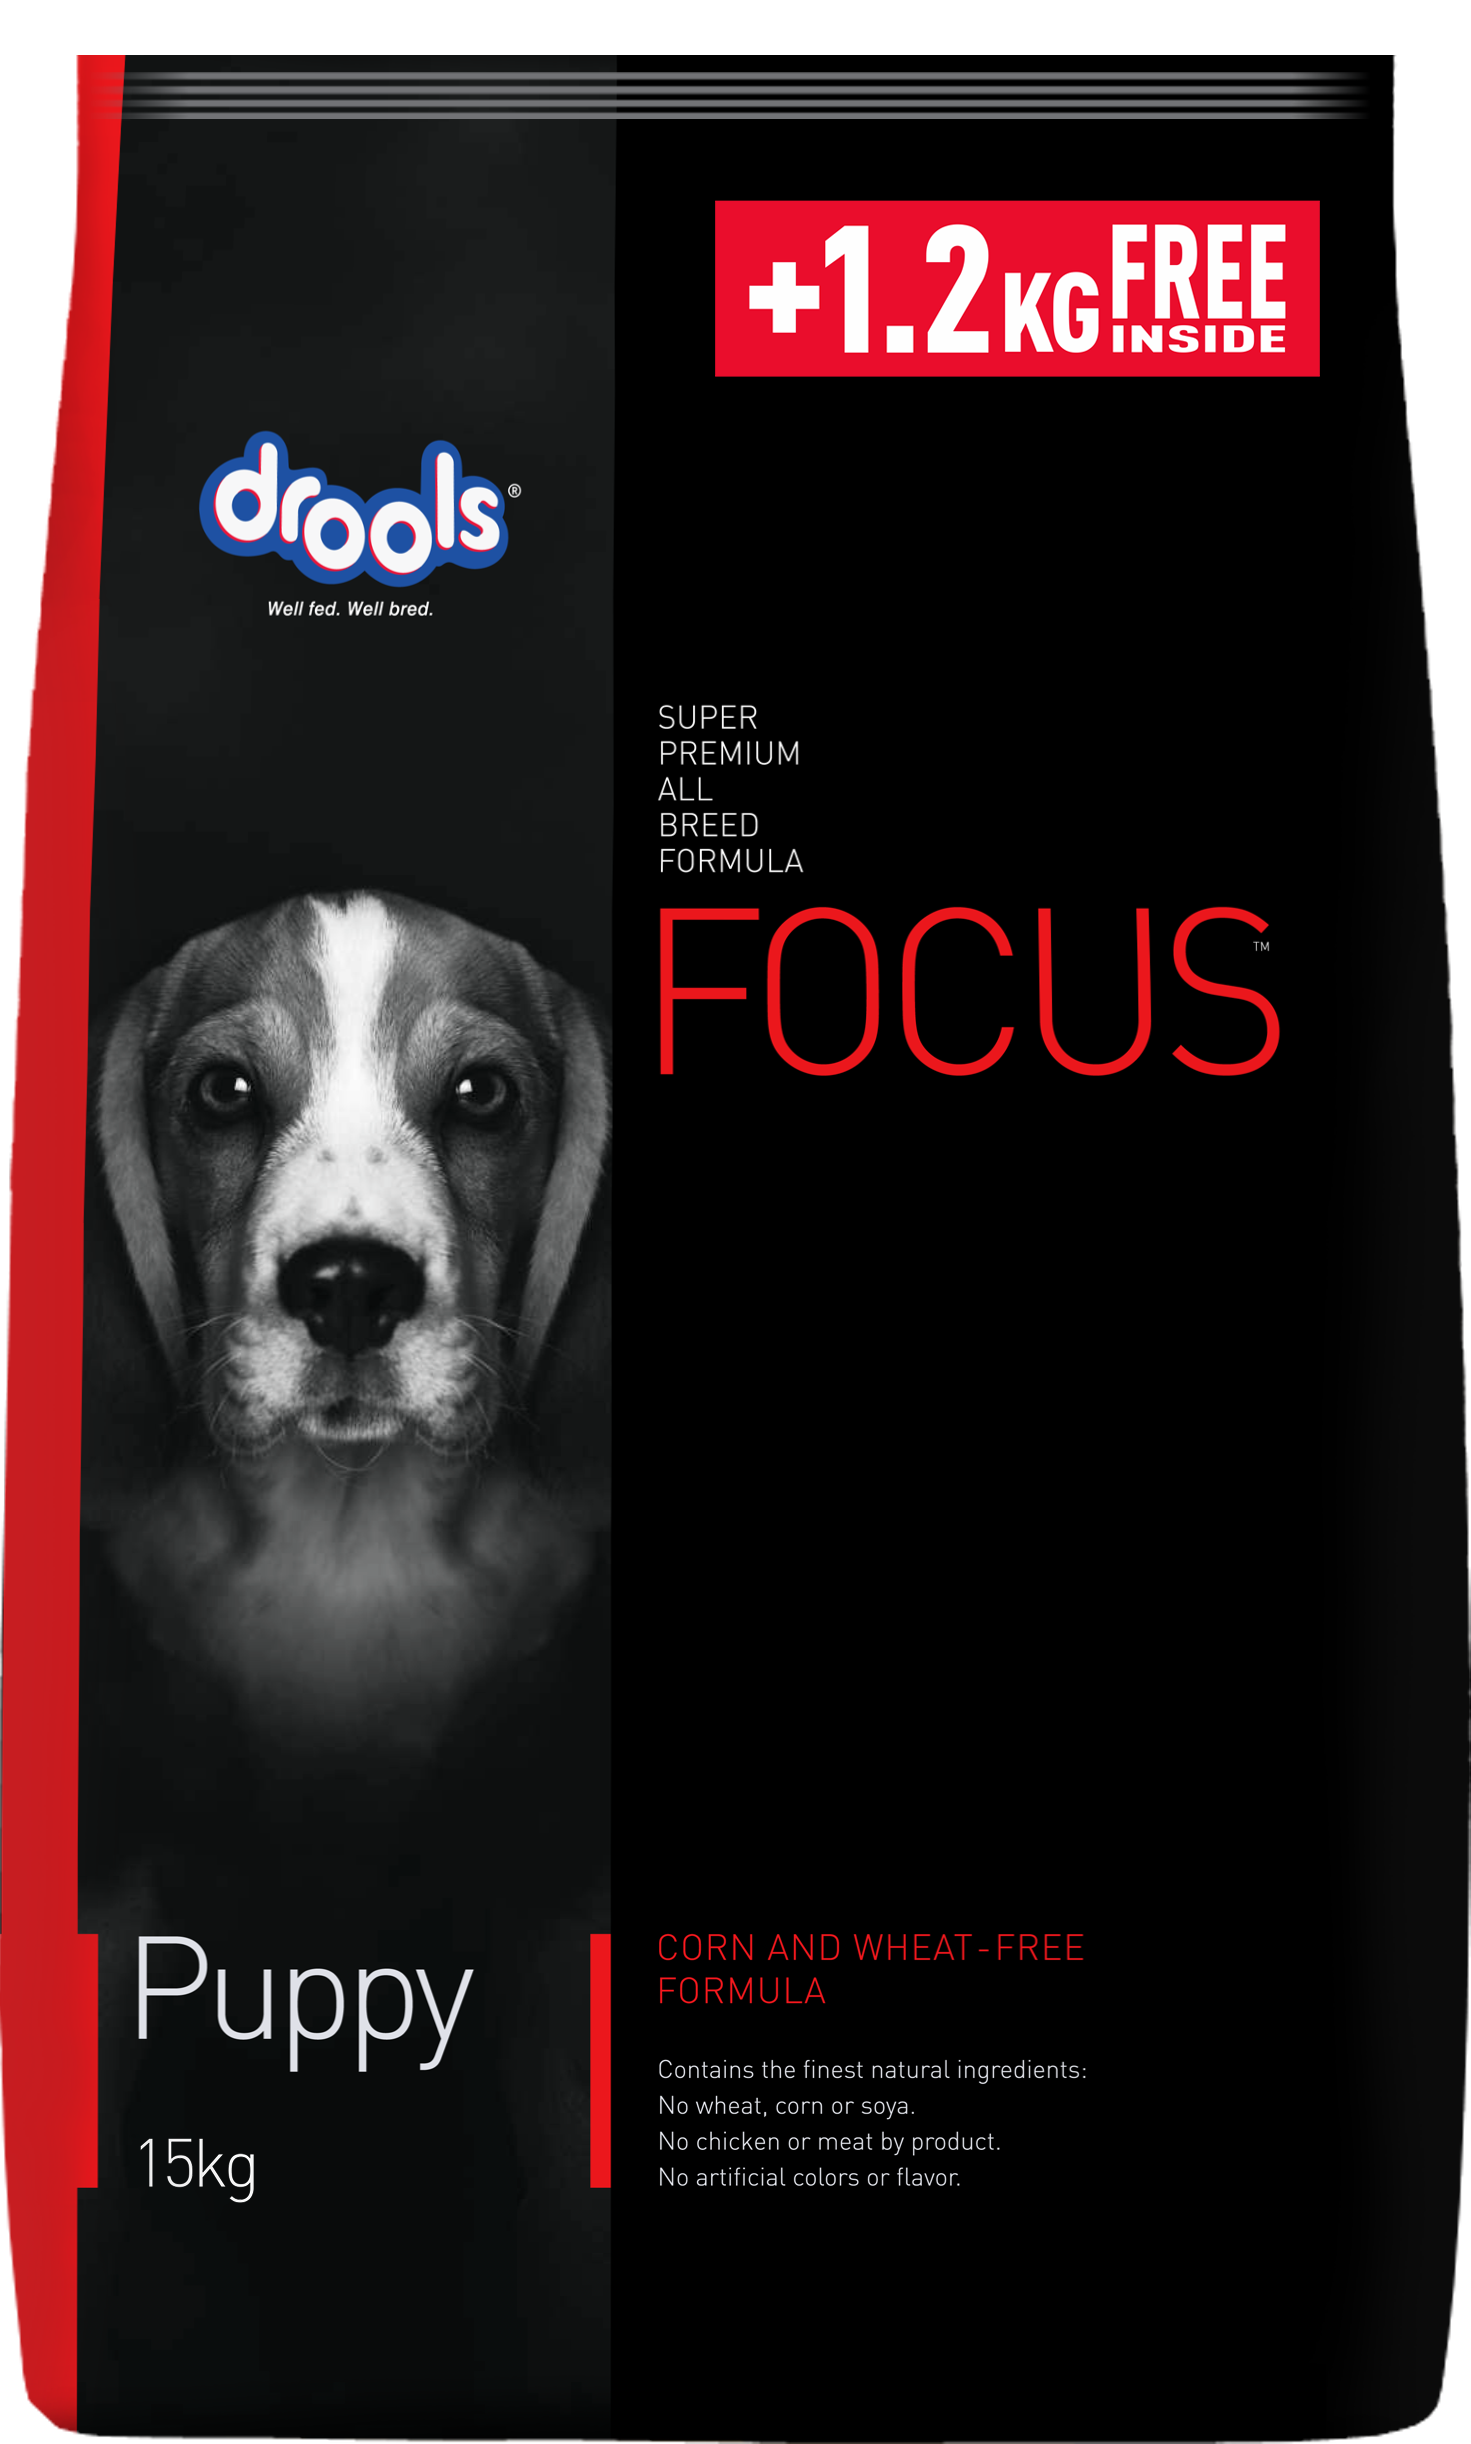 Drools Focus Puppy, Super Premium Dog Food, 12kg